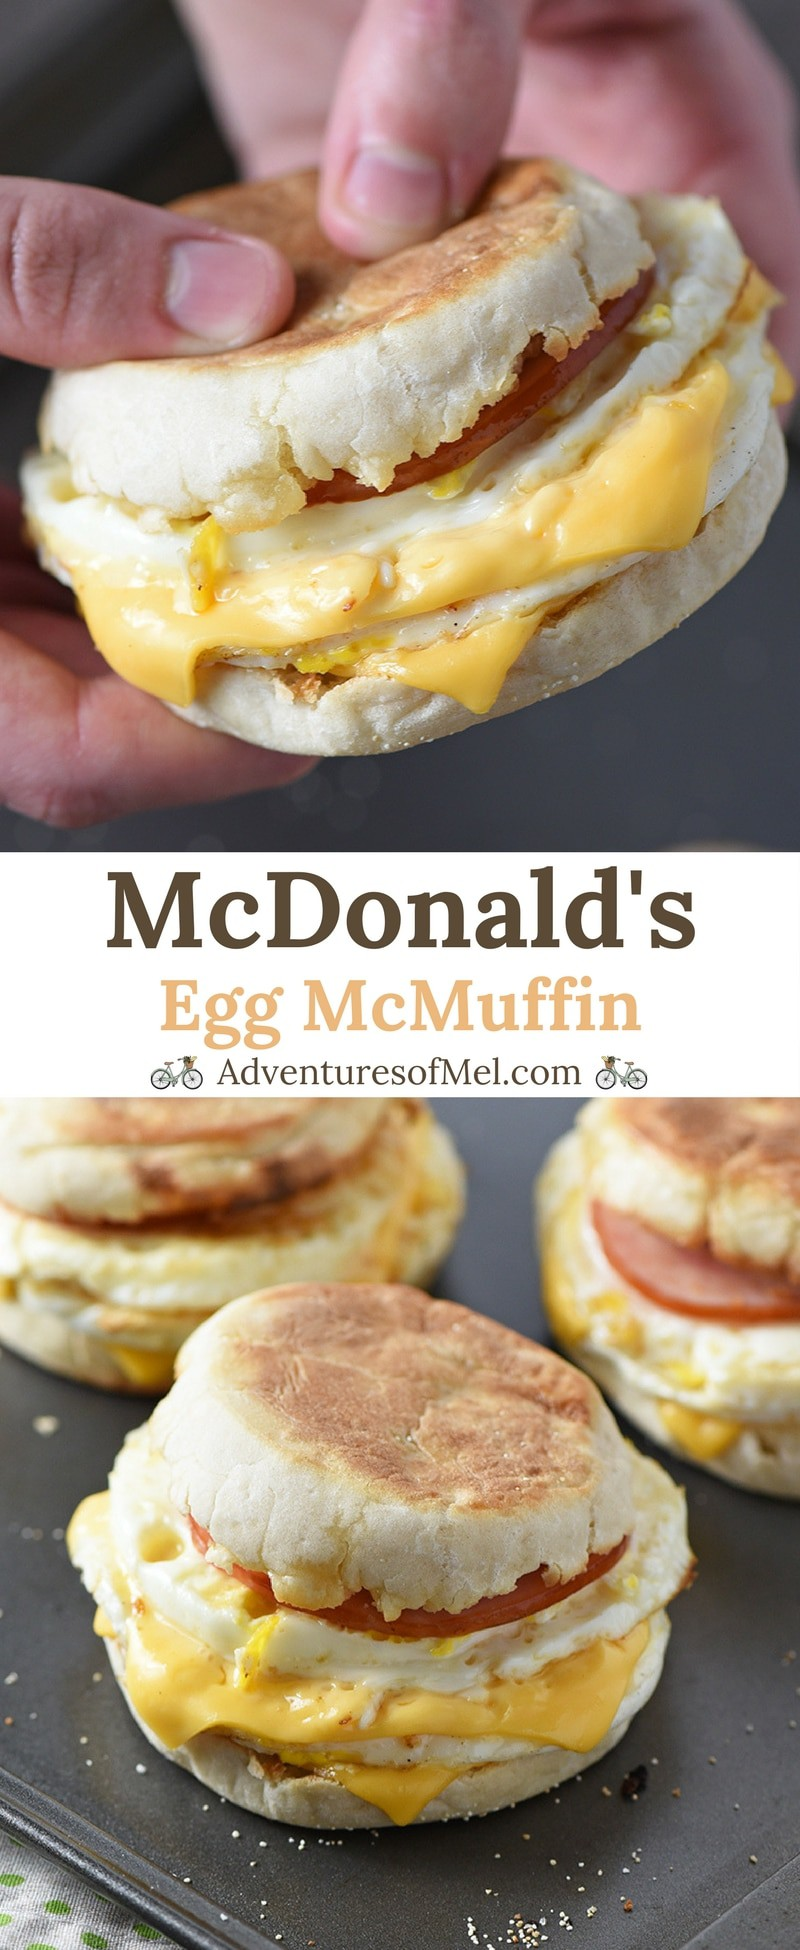 McDonald's Egg McMuffin, made with Canadian bacon, eggs, and cheese, is a delicious homemade breakfast sandwich and a super easy recipe for busy mornings!